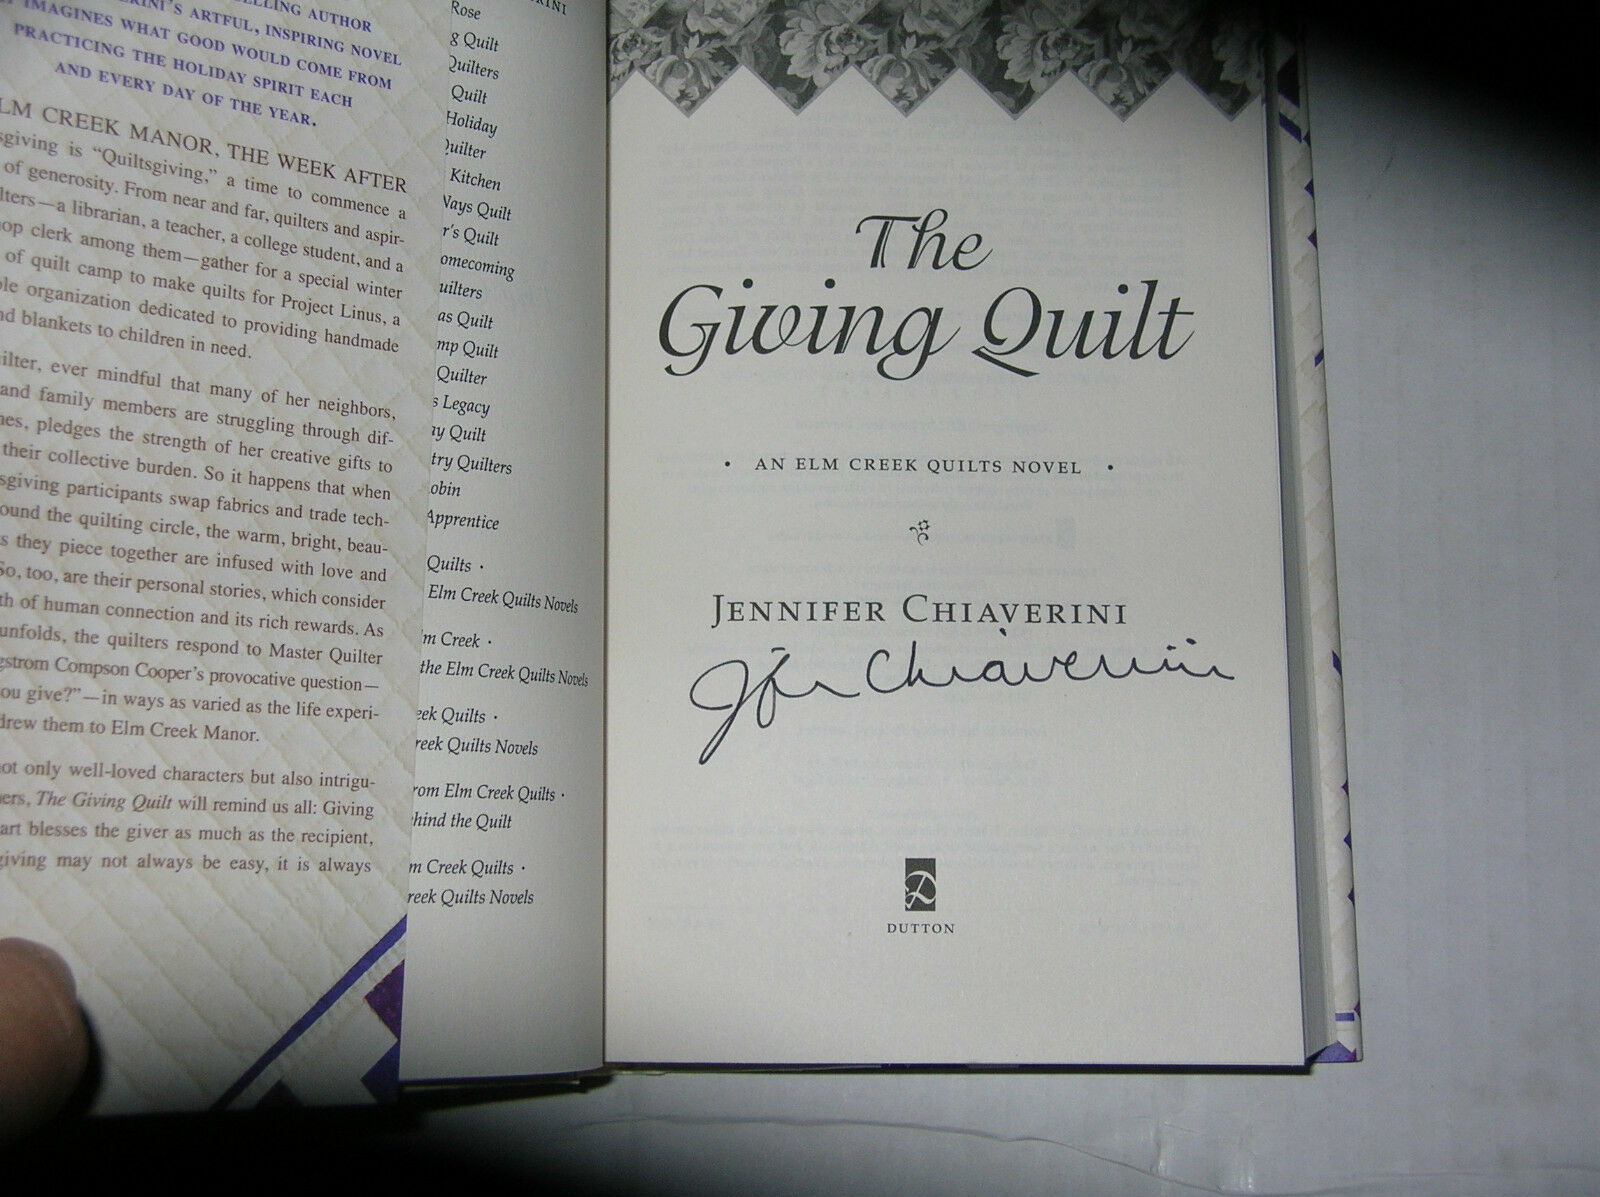 An Elm Creek Quilts Novel: The Giving Quilt by Jennifer Chiaverini ... : the giving quilt book - Adamdwight.com